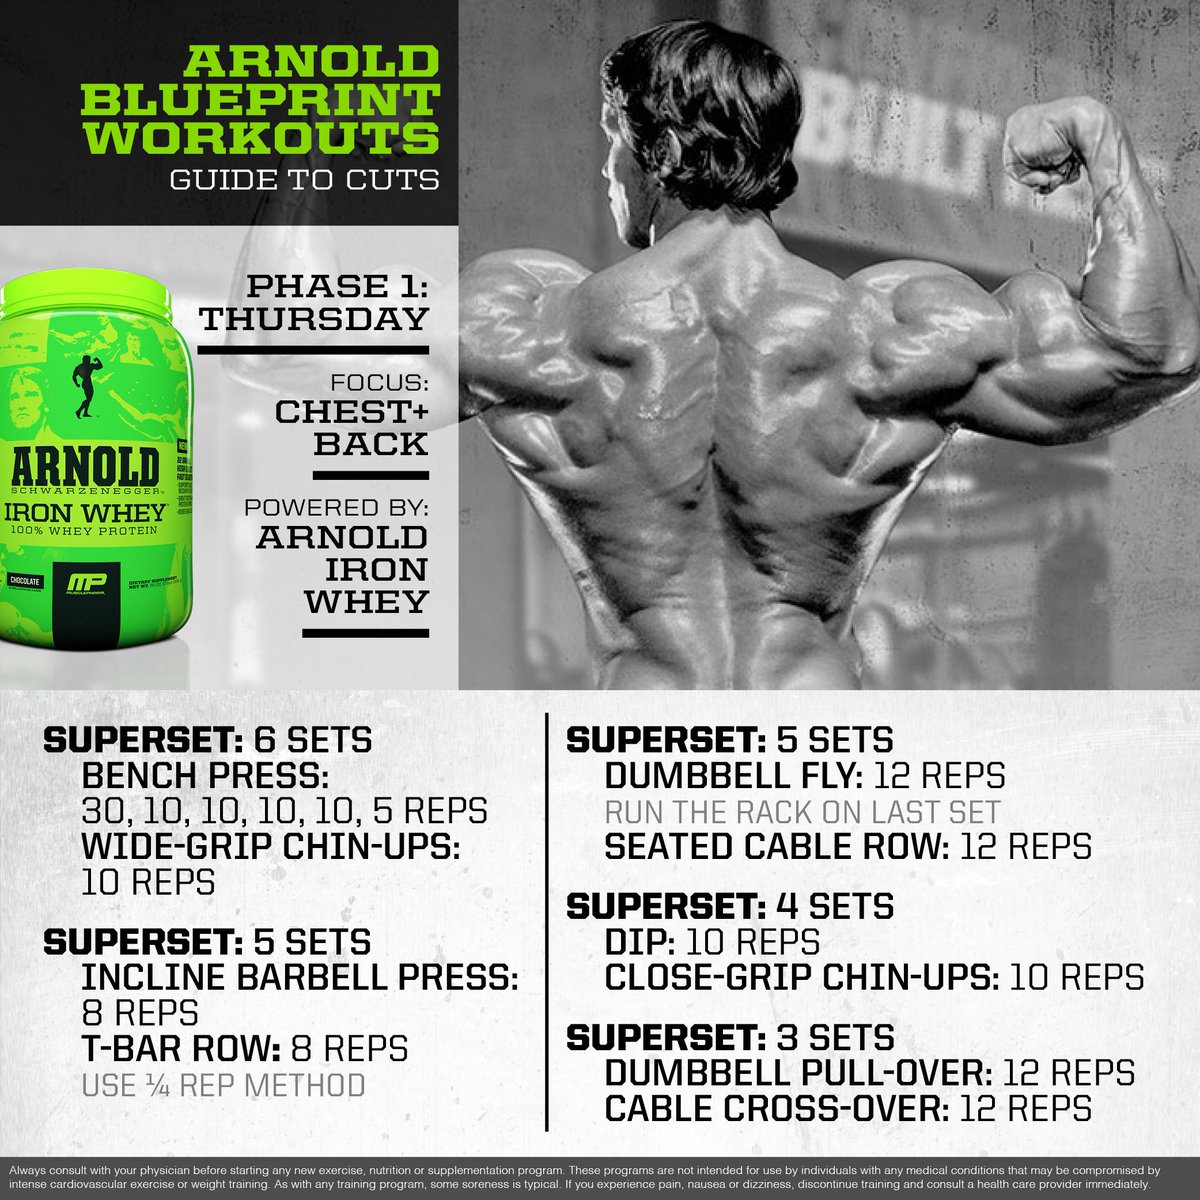 Musclepharm on twitter mp workout of the day arnold musclepharm on twitter mp workout of the day arnold schwarzenegger blueprint to cut chestback workout powered by ironwhey httptlgpa1qepht malvernweather Choice Image